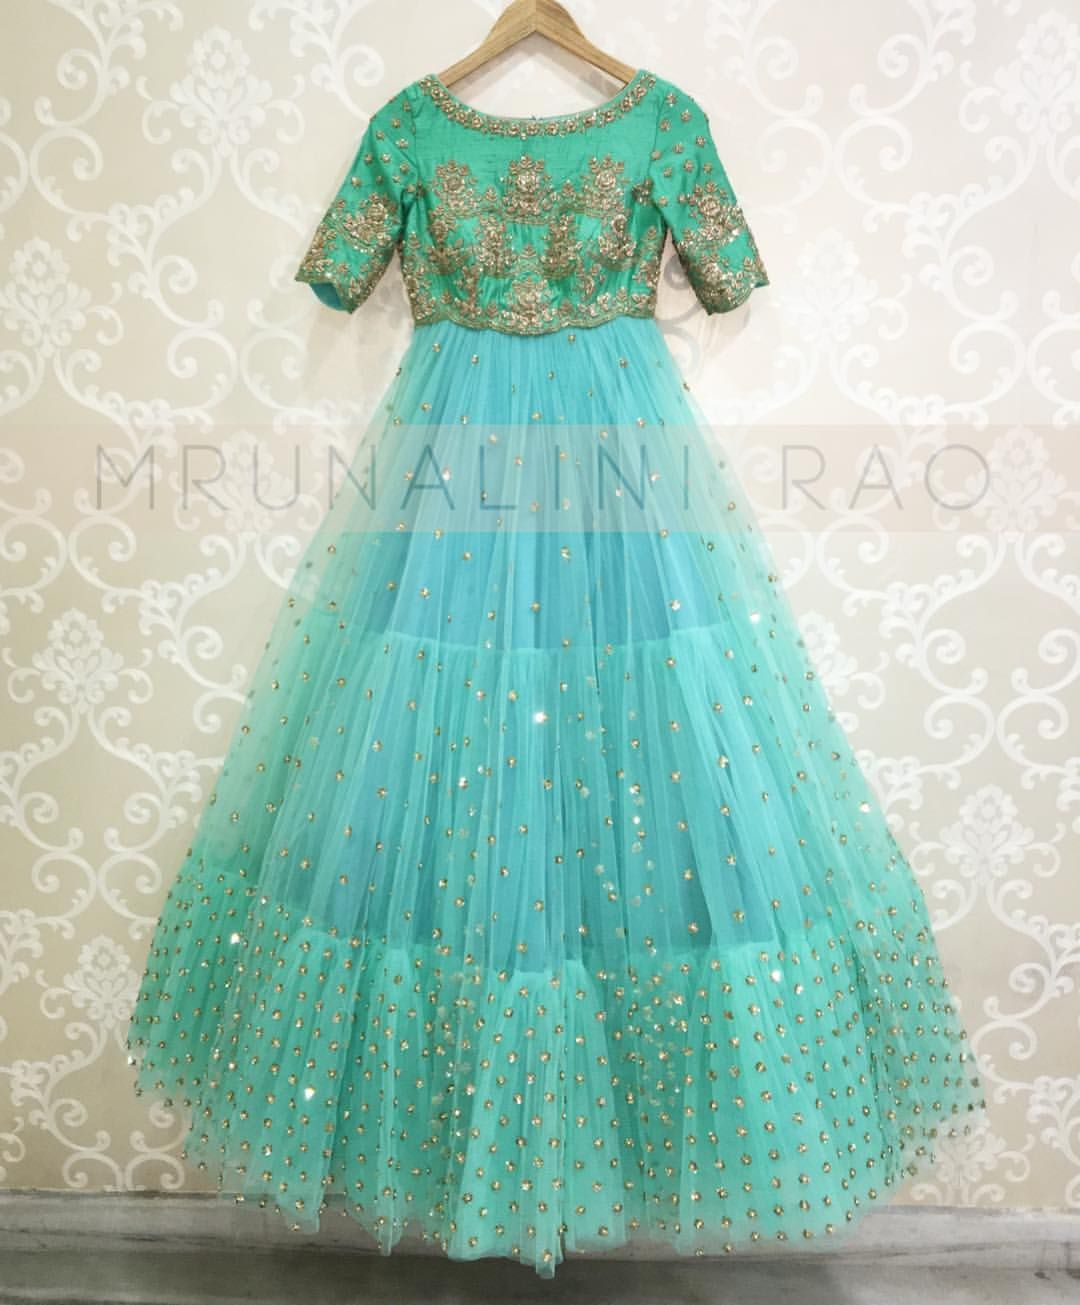 Seagreen tiered tulle dress mrunalini rao. 28 March 2017 | Indian ...